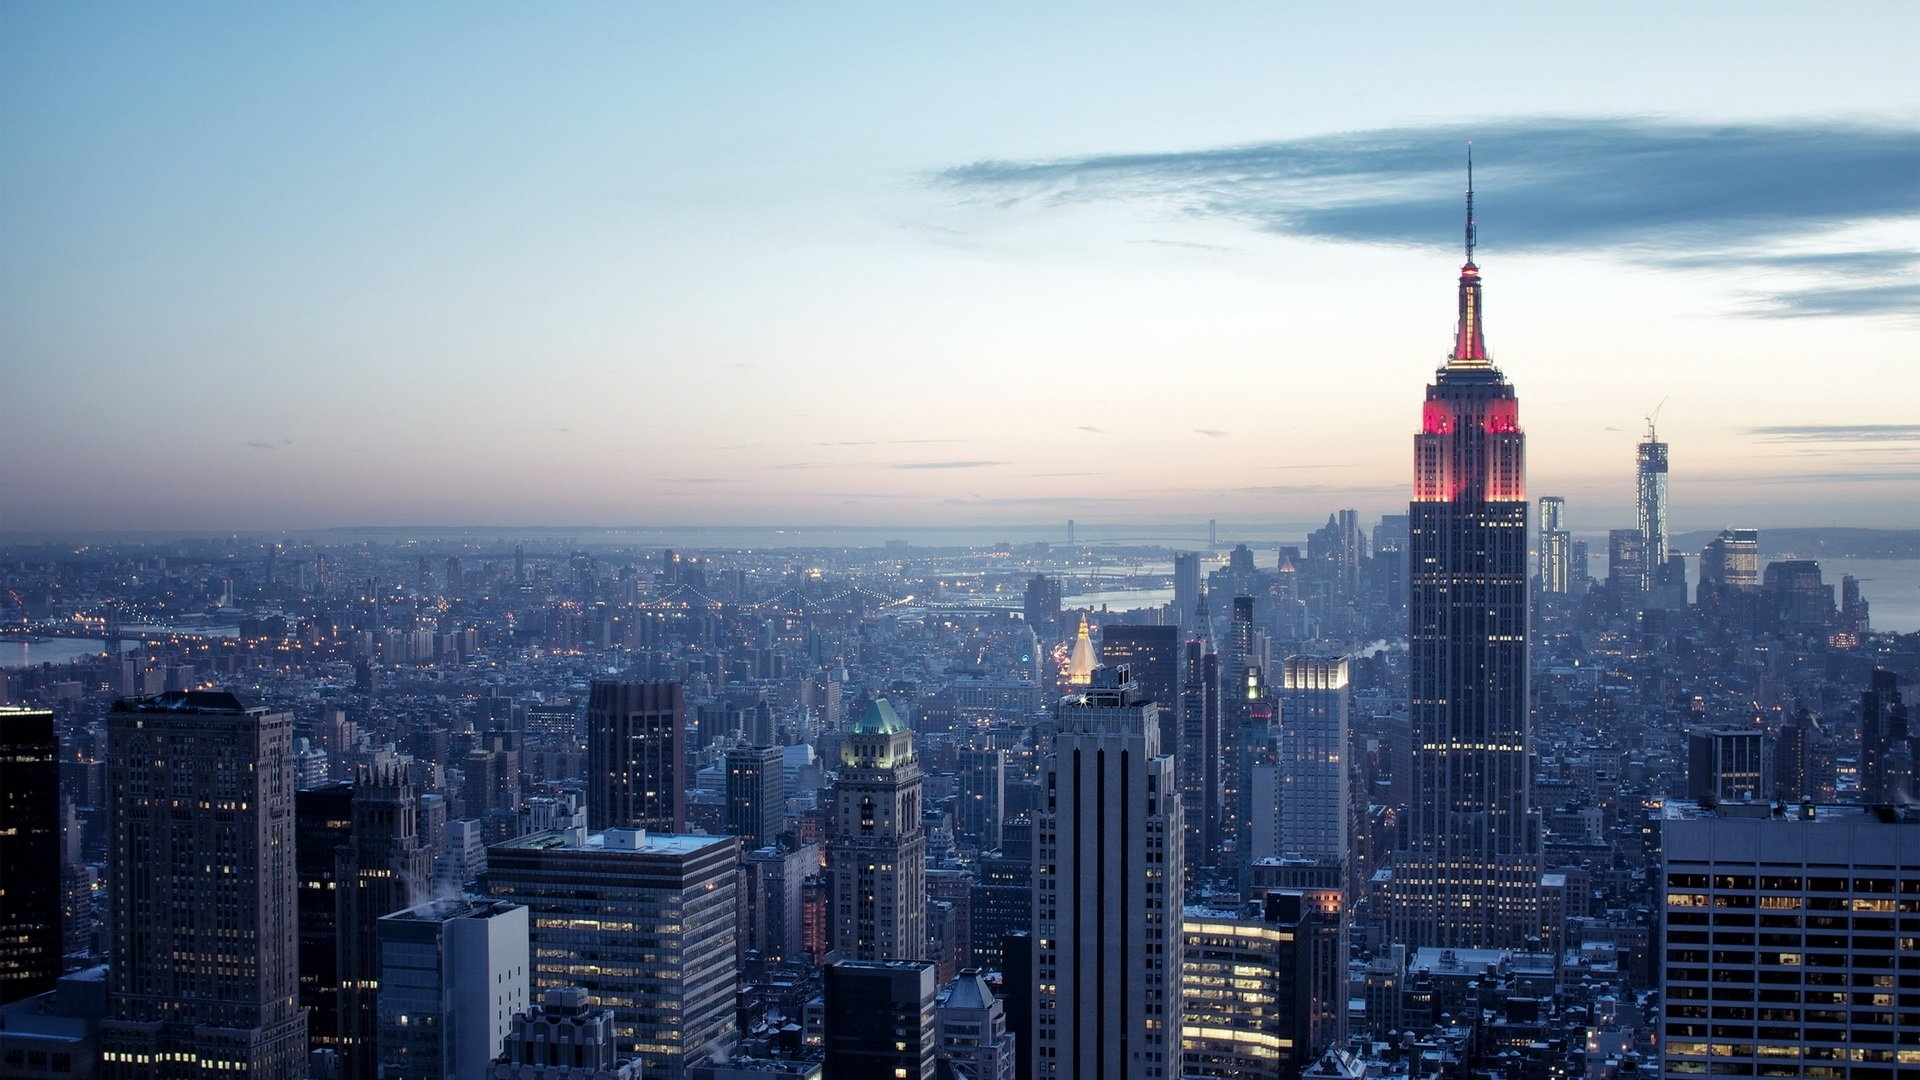 10 Top New York Wallpaper 1920X1080 FULL HD 1920×1080 For PC Background